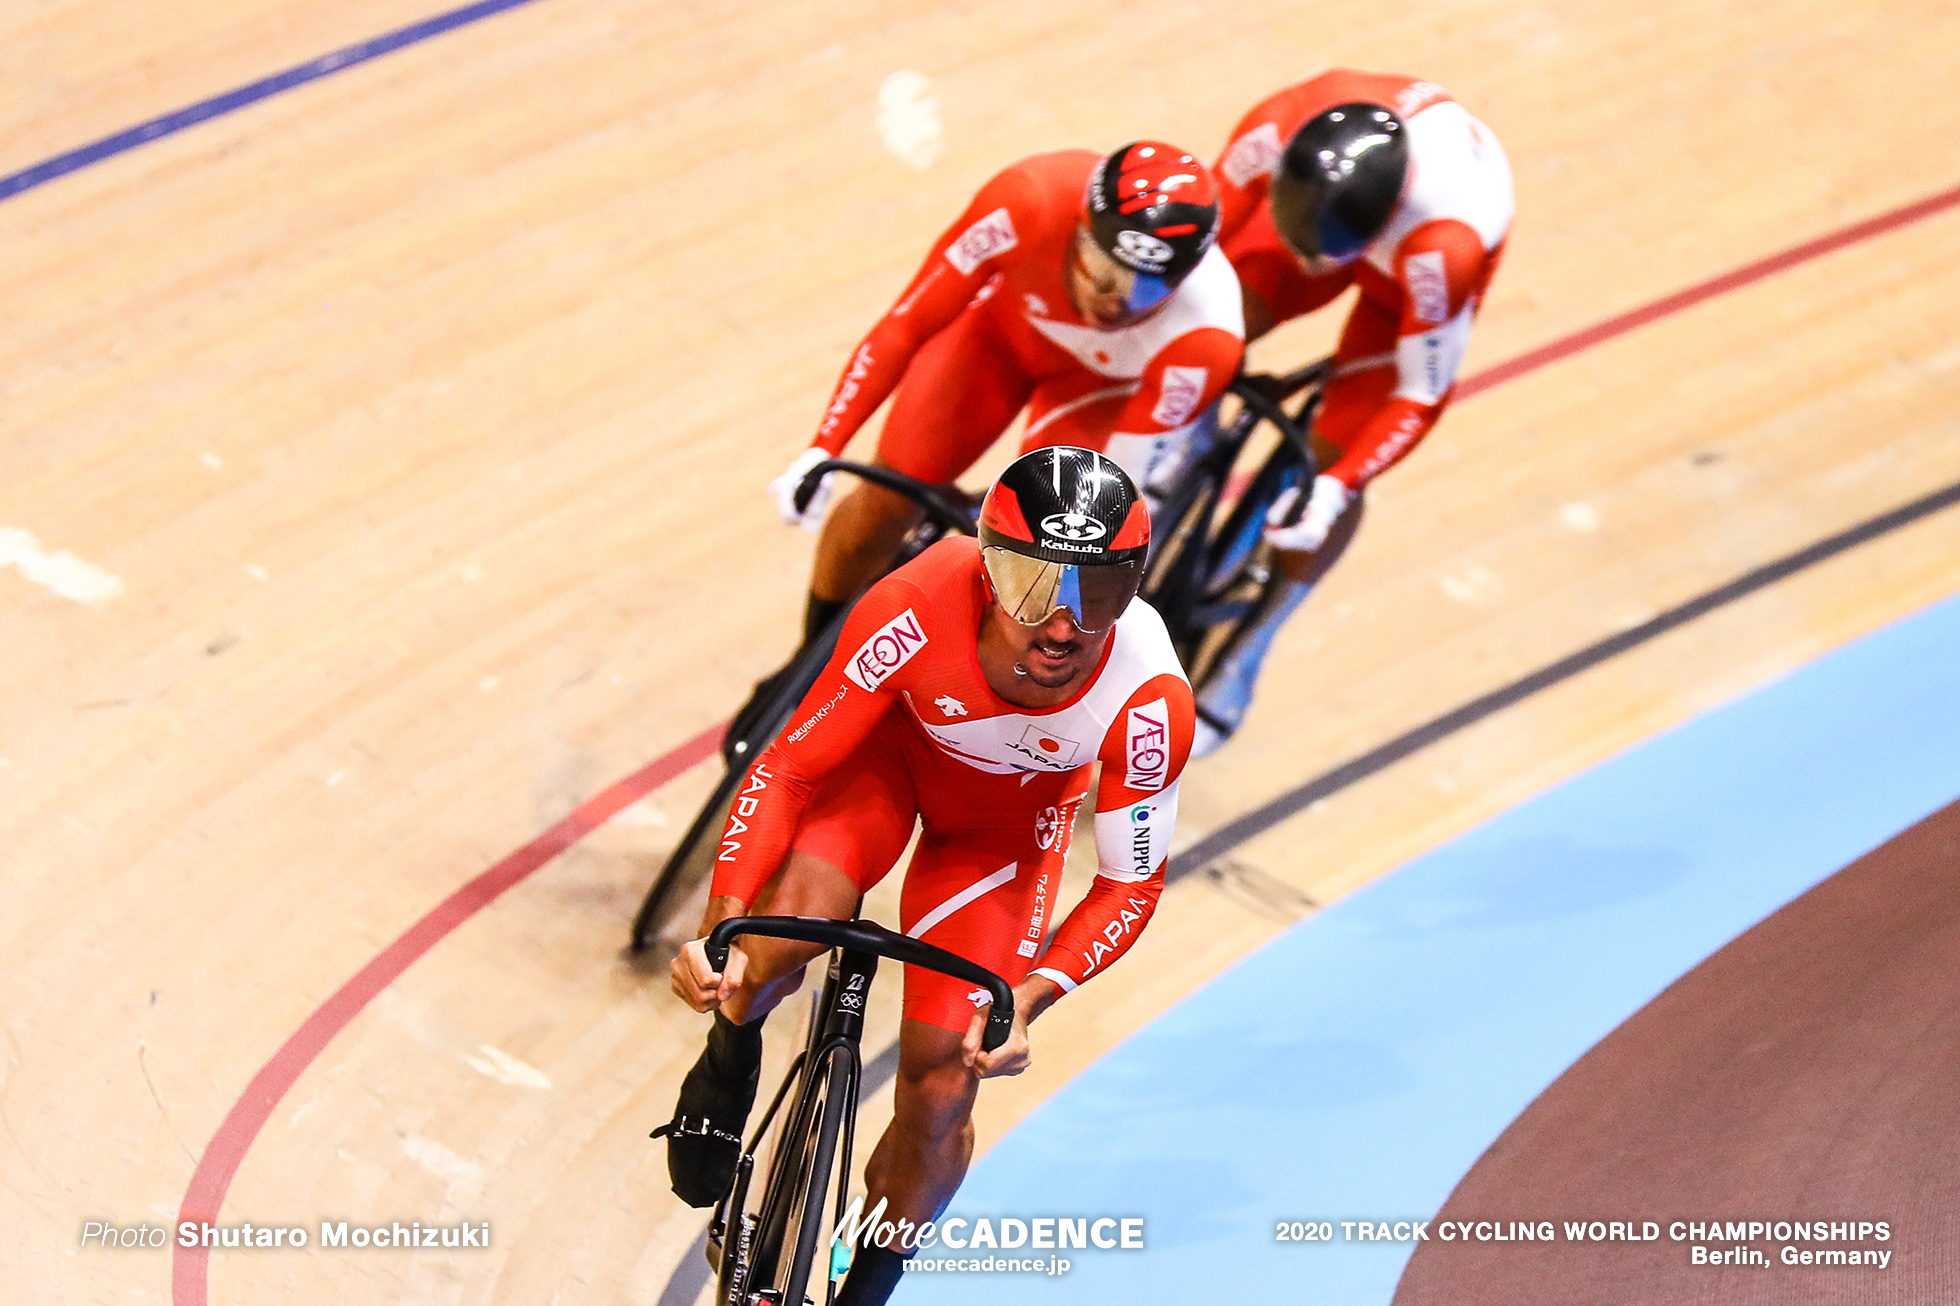 Qualifying / Men's Team Sprint / 2020 Track Cycling World Championships, 雨谷一樹 Amagai Kazuki, 新田祐大 Nitta Yudai, 深谷知広 Fukaya Tomohiro